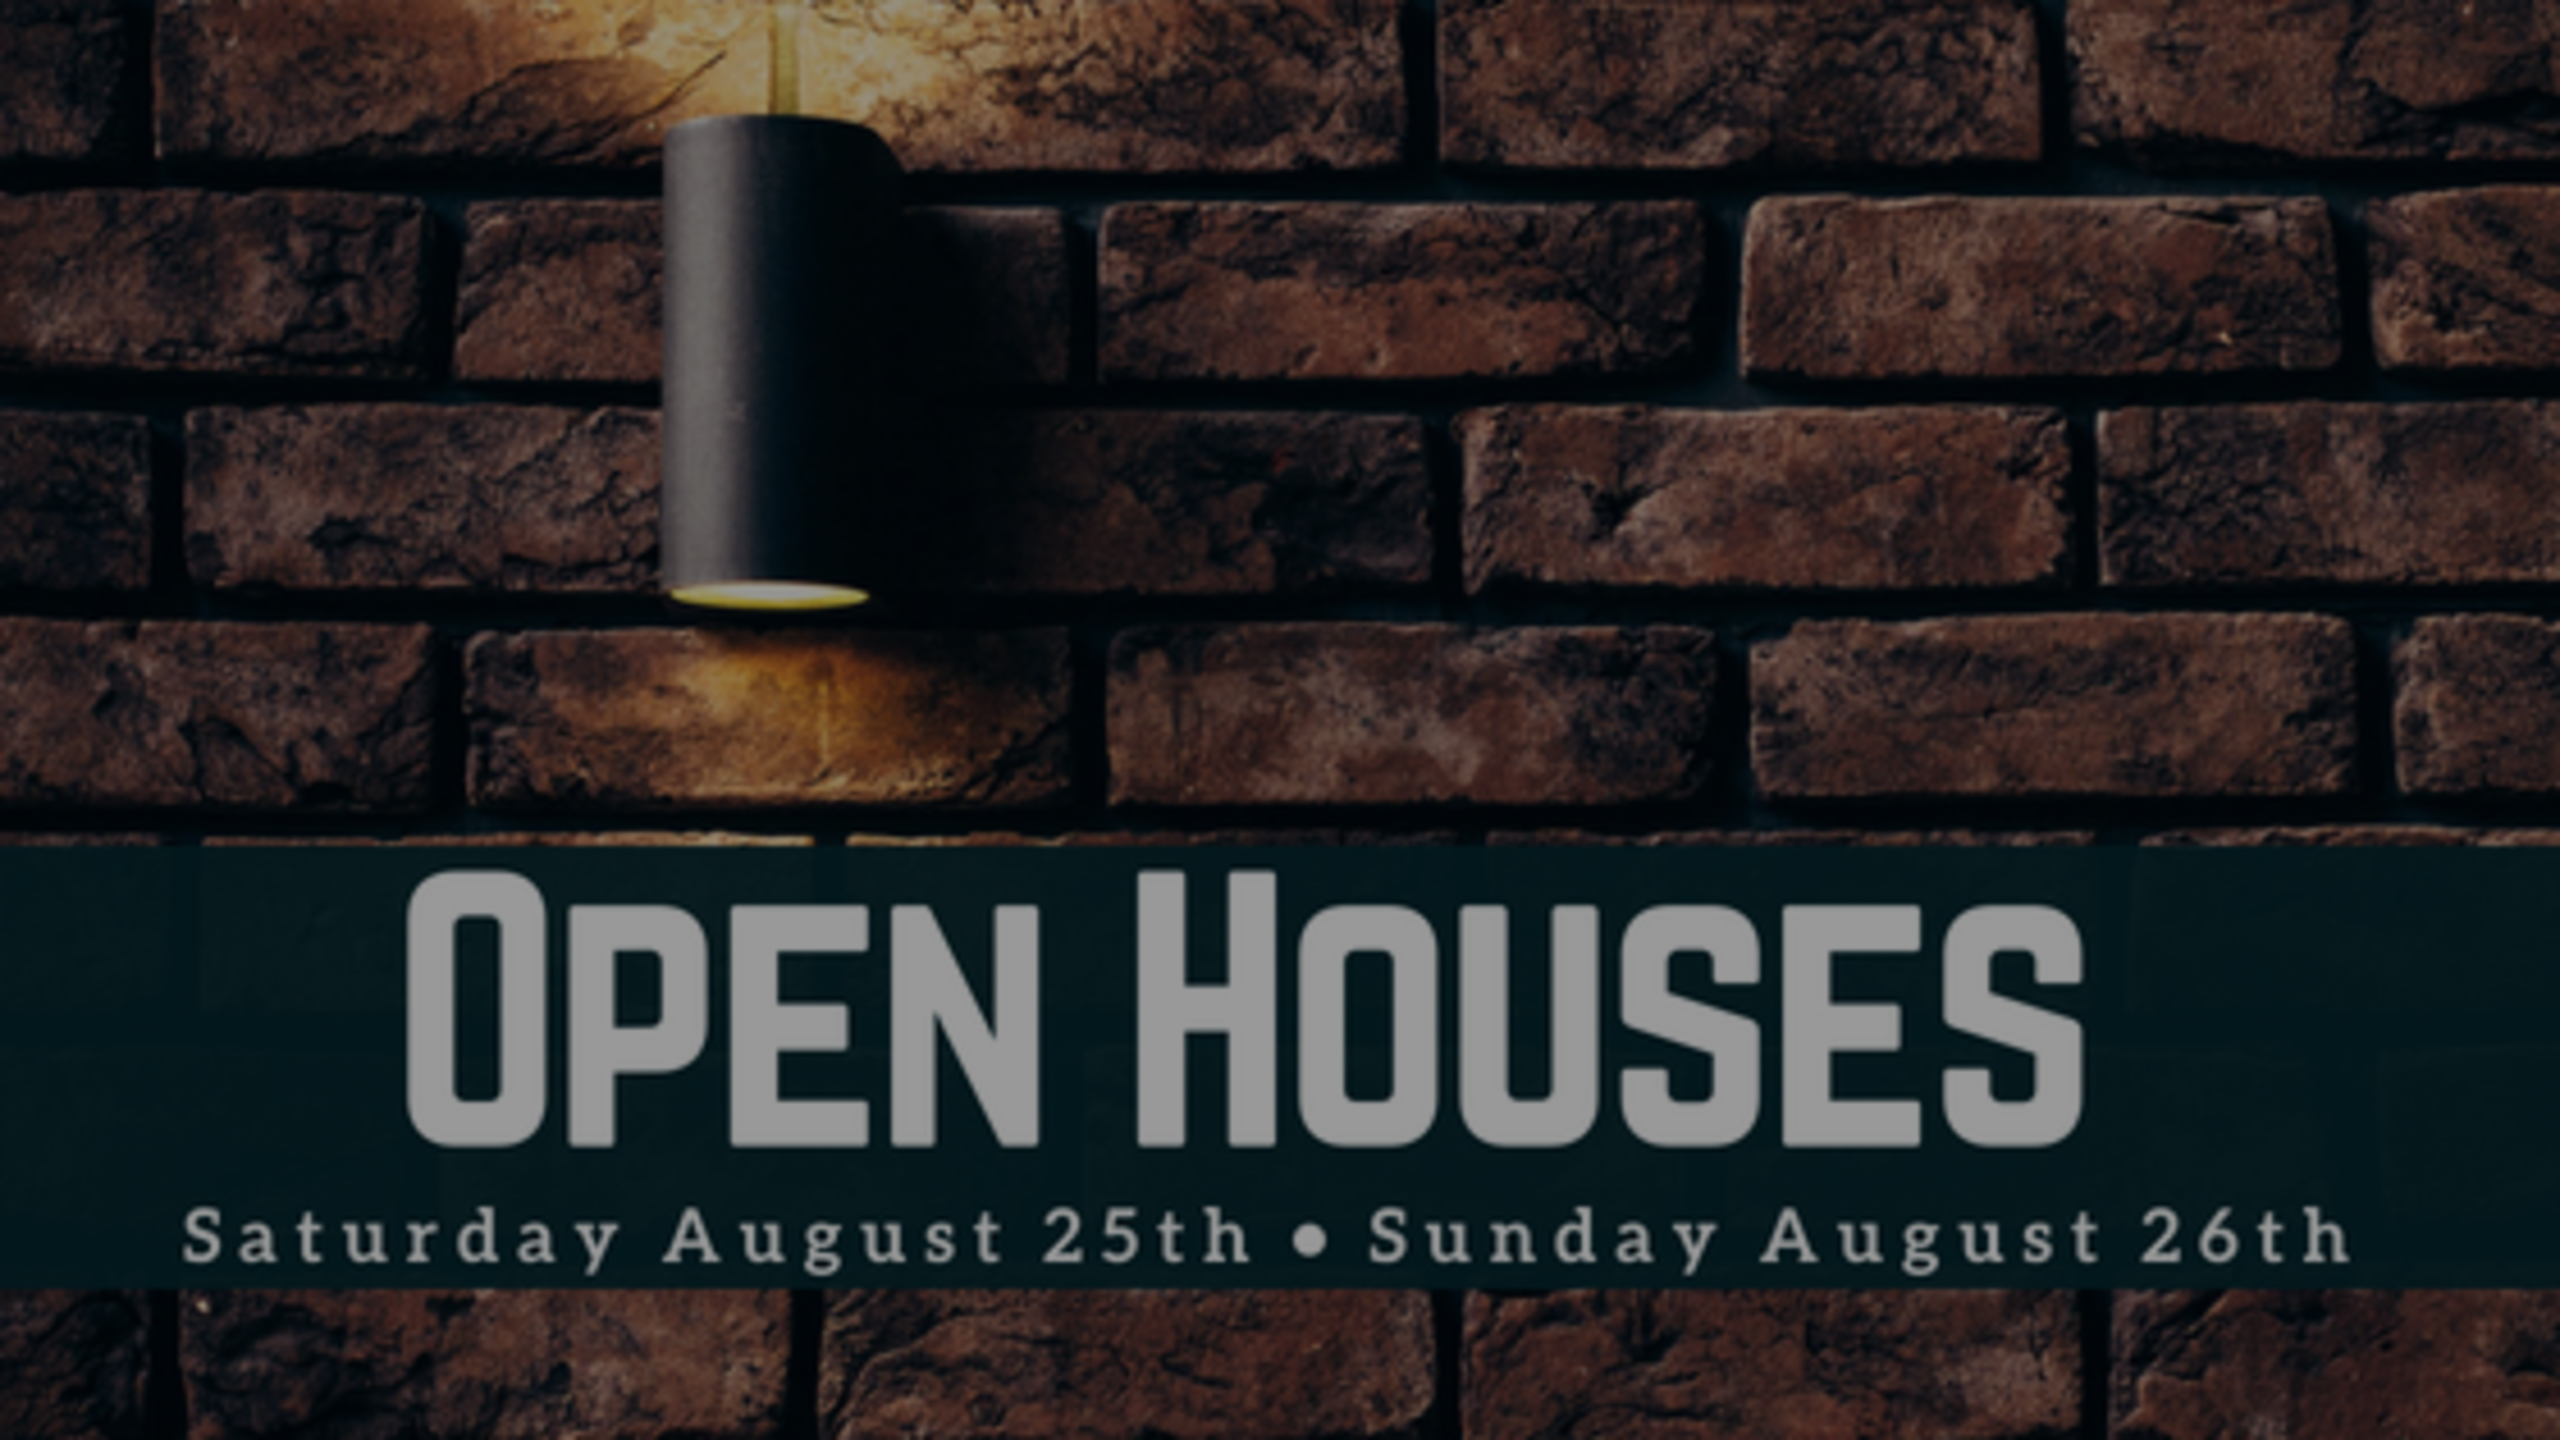 Our Open Houses: Weekend of 8/25 – 8/26